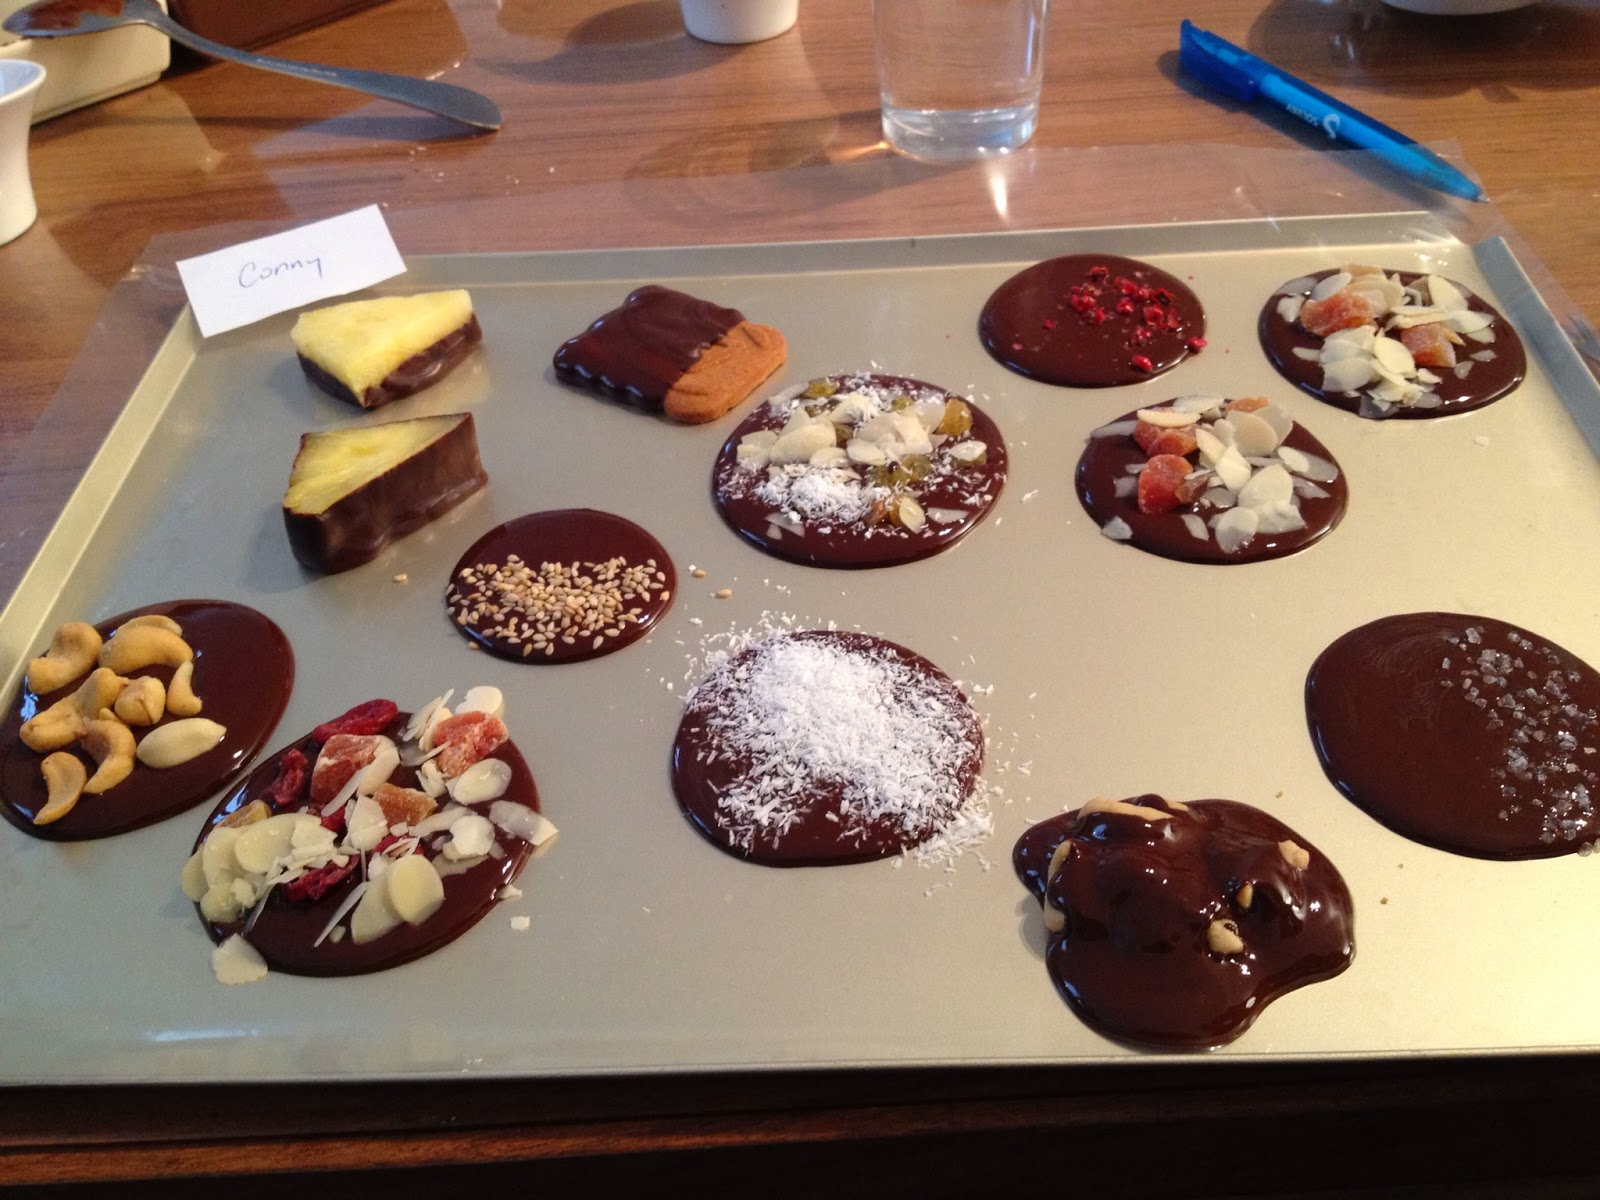 Brussels - We took a chocolate tour and got to make our own chocolates